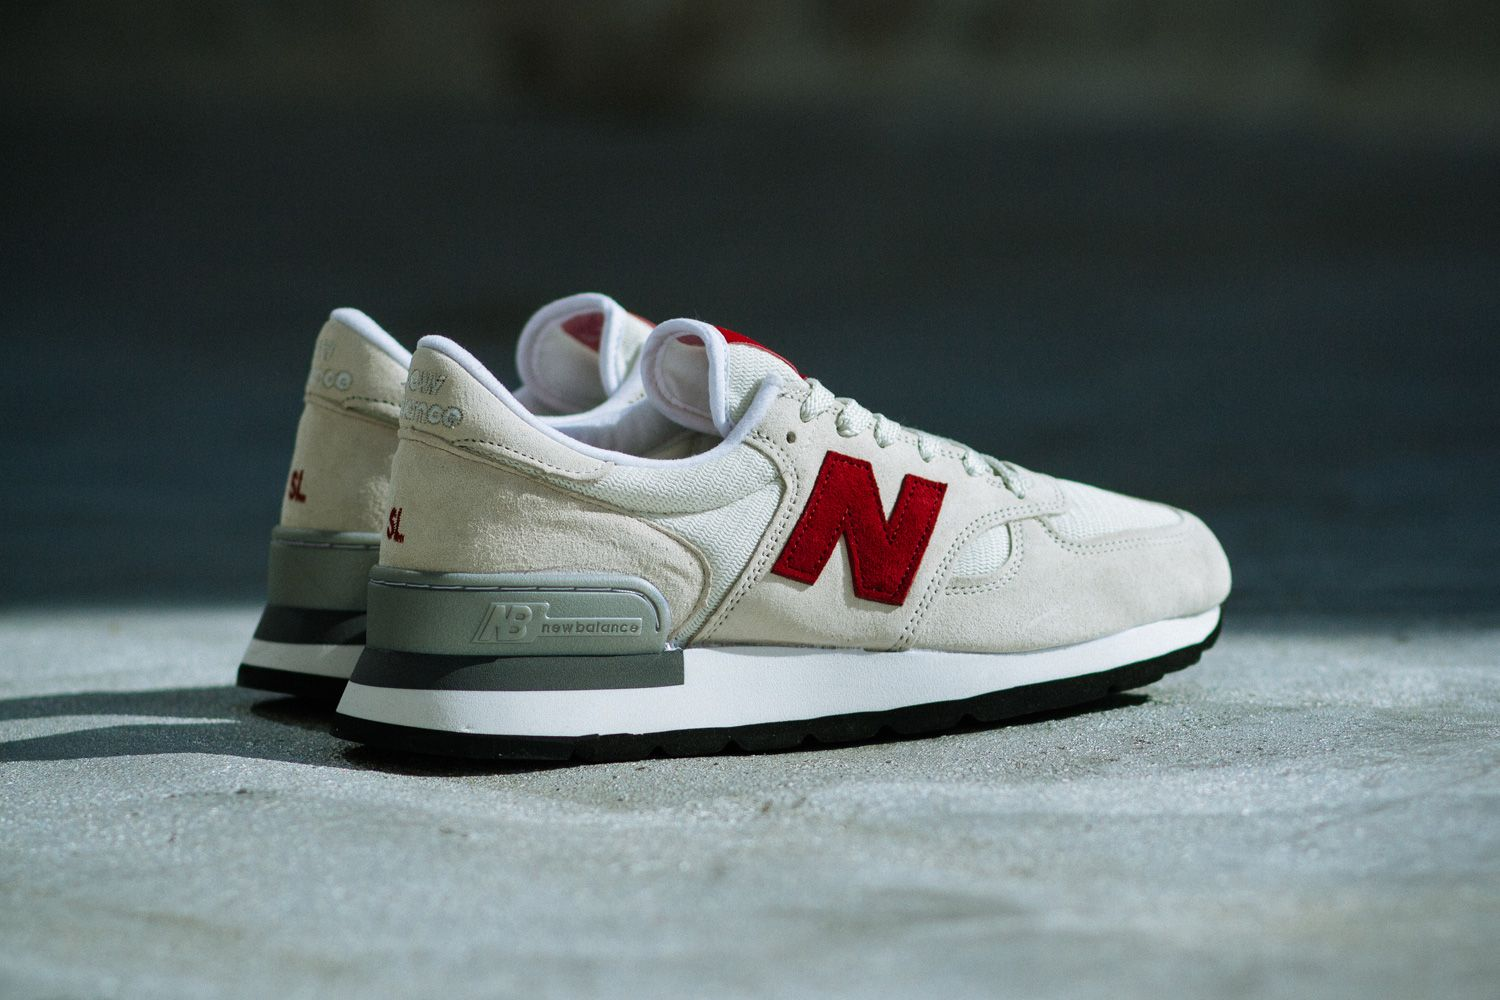 New Balance 990 For Selectism - Made In The USA